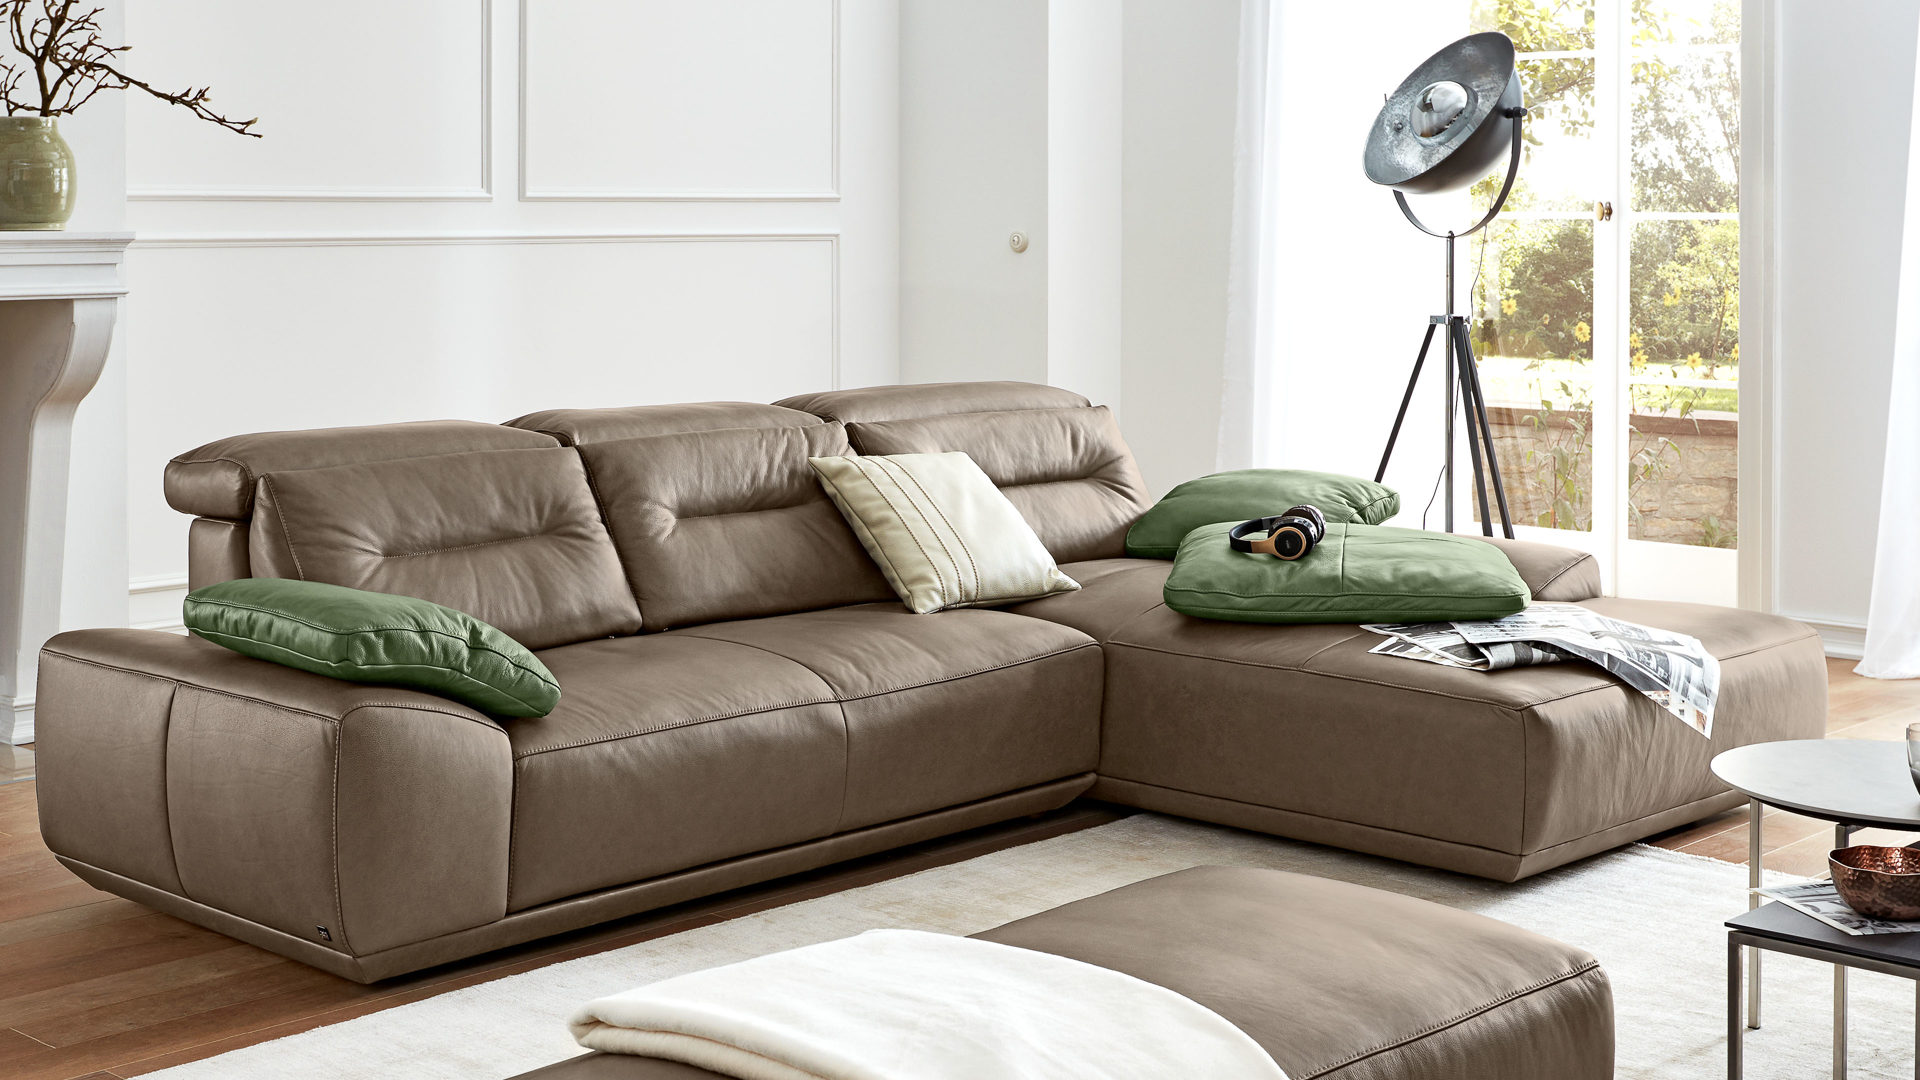 Ecksofa Interliving aus Leder in Braun Interliving Sofa Serie 4000 – Eckkombination braunes Leder Z39.23 mushroom – Schenkelmaß ca. 310 x 209 cm